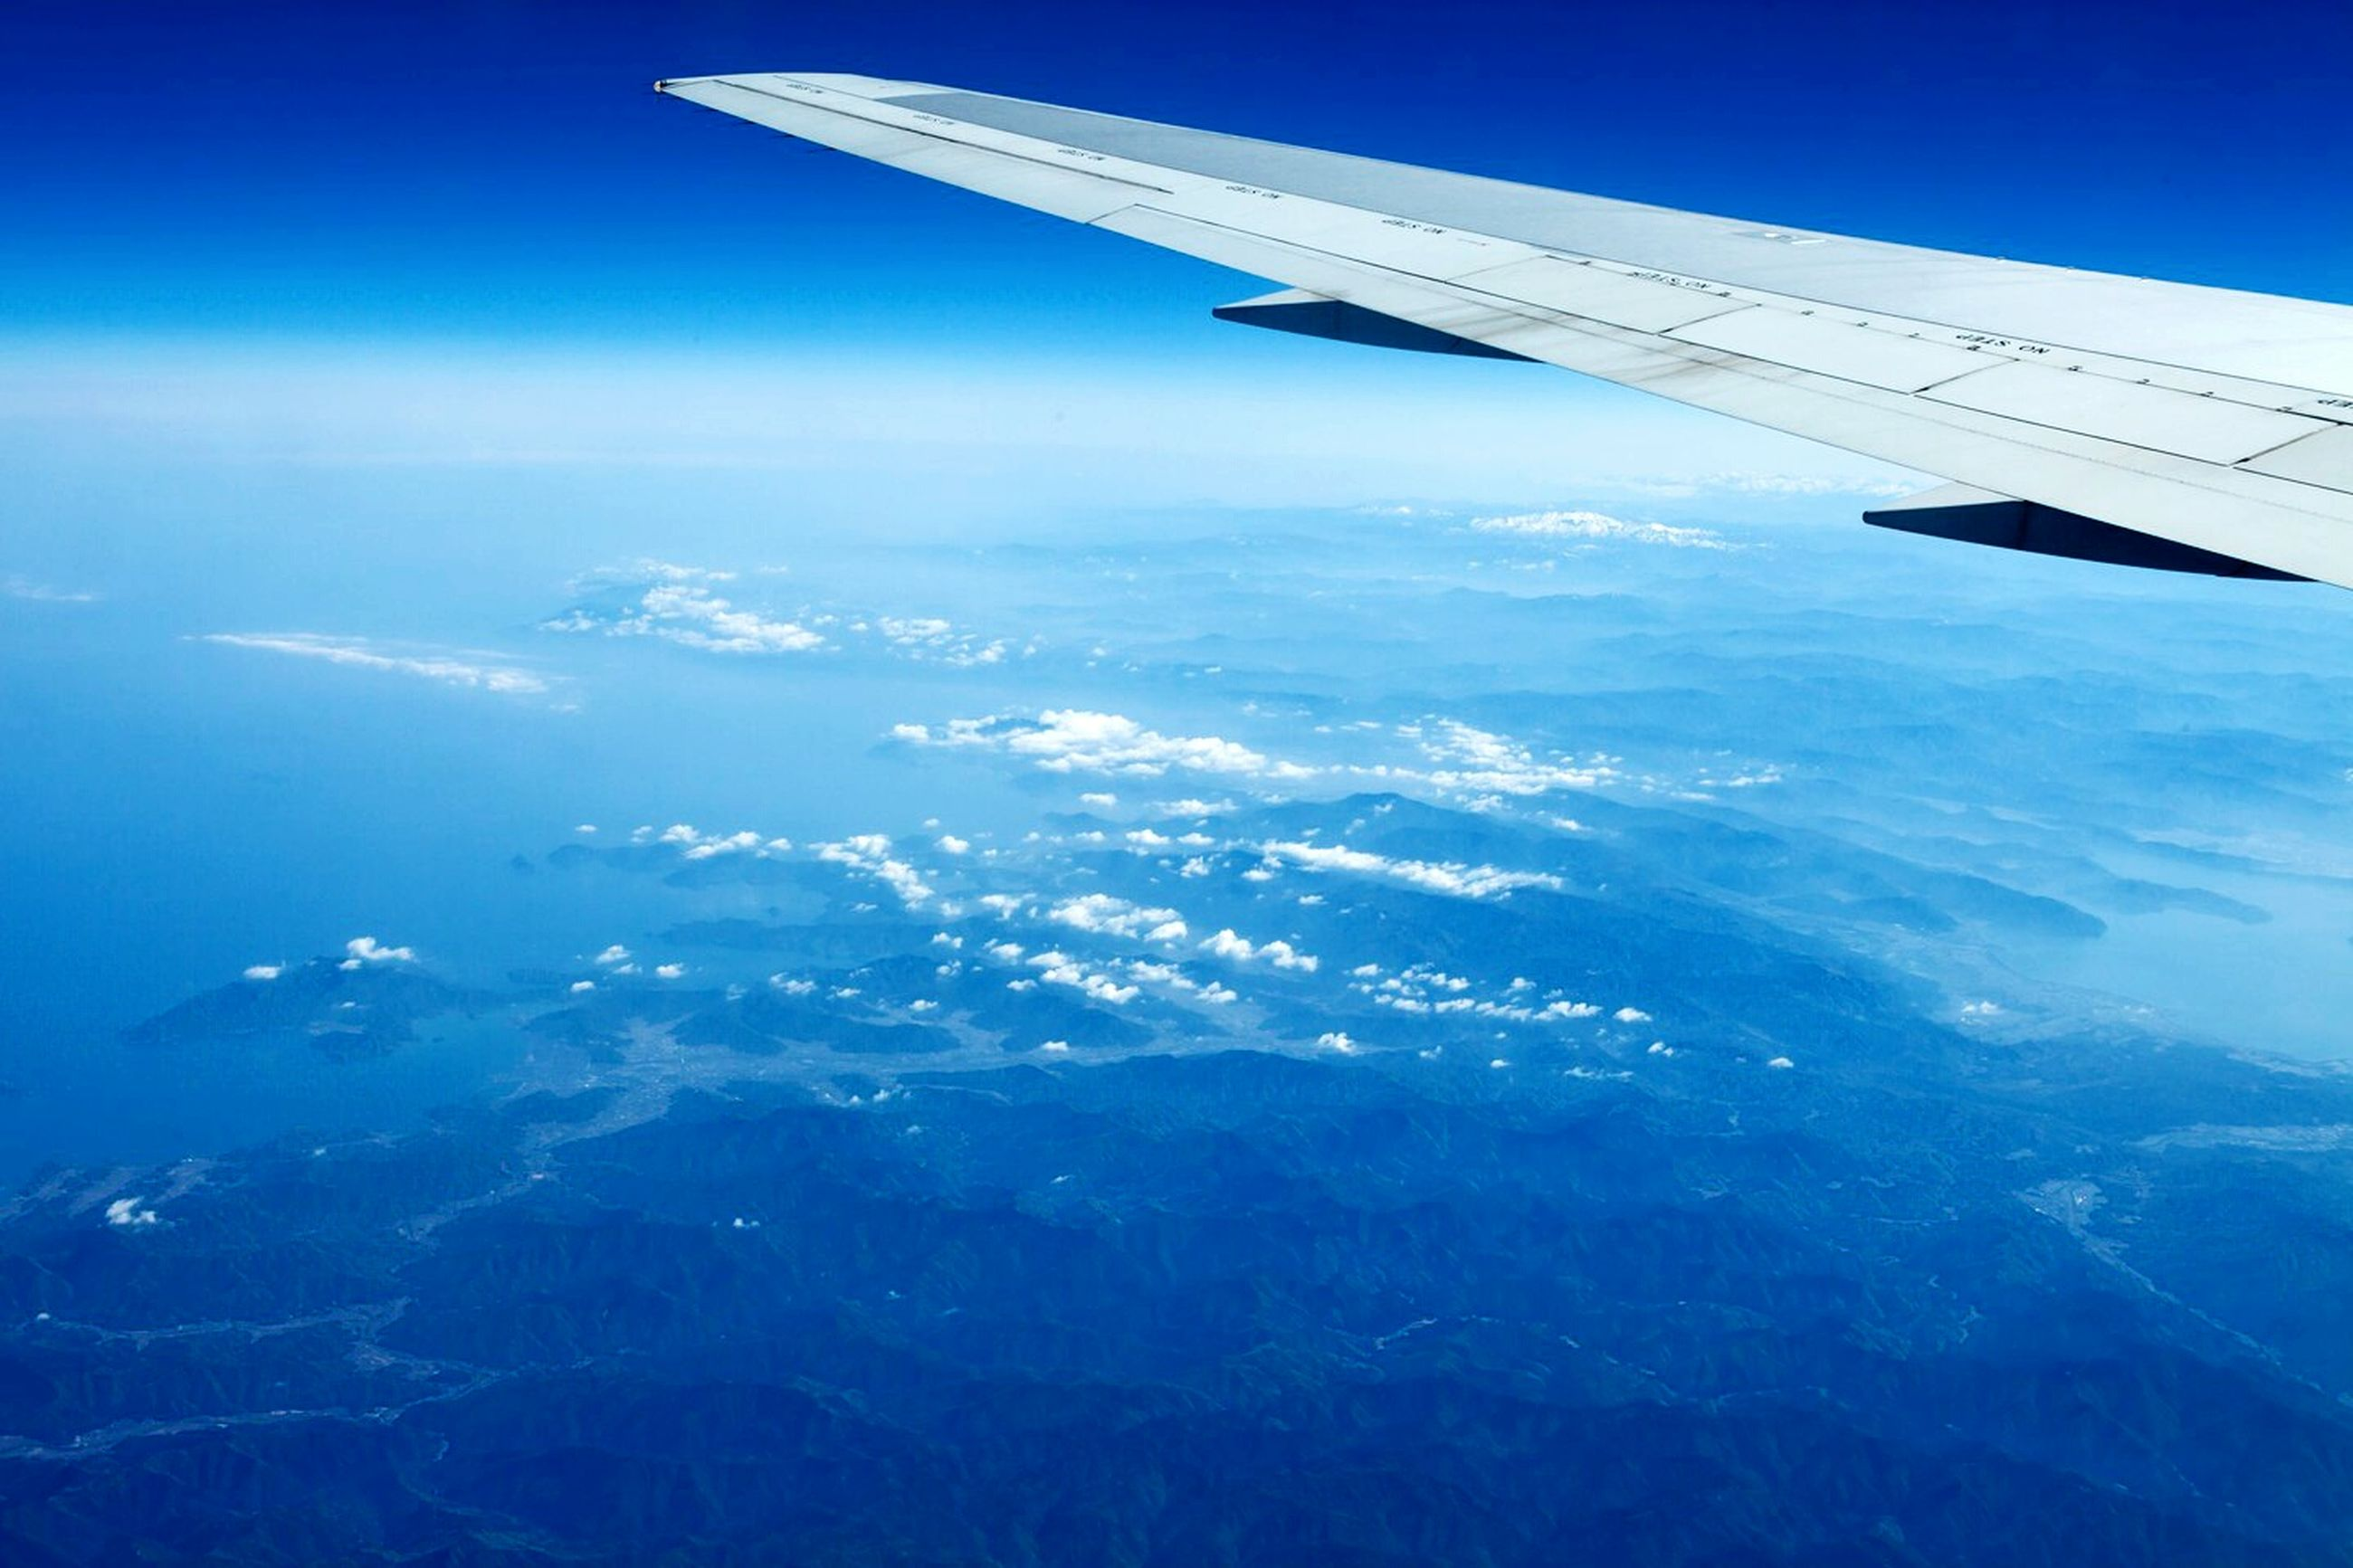 flying, airplane, air vehicle, aircraft wing, aerial view, transportation, mode of transport, mid-air, part of, blue, cropped, landscape, travel, journey, airplane wing, scenics, on the move, beauty in nature, sky, public transportation